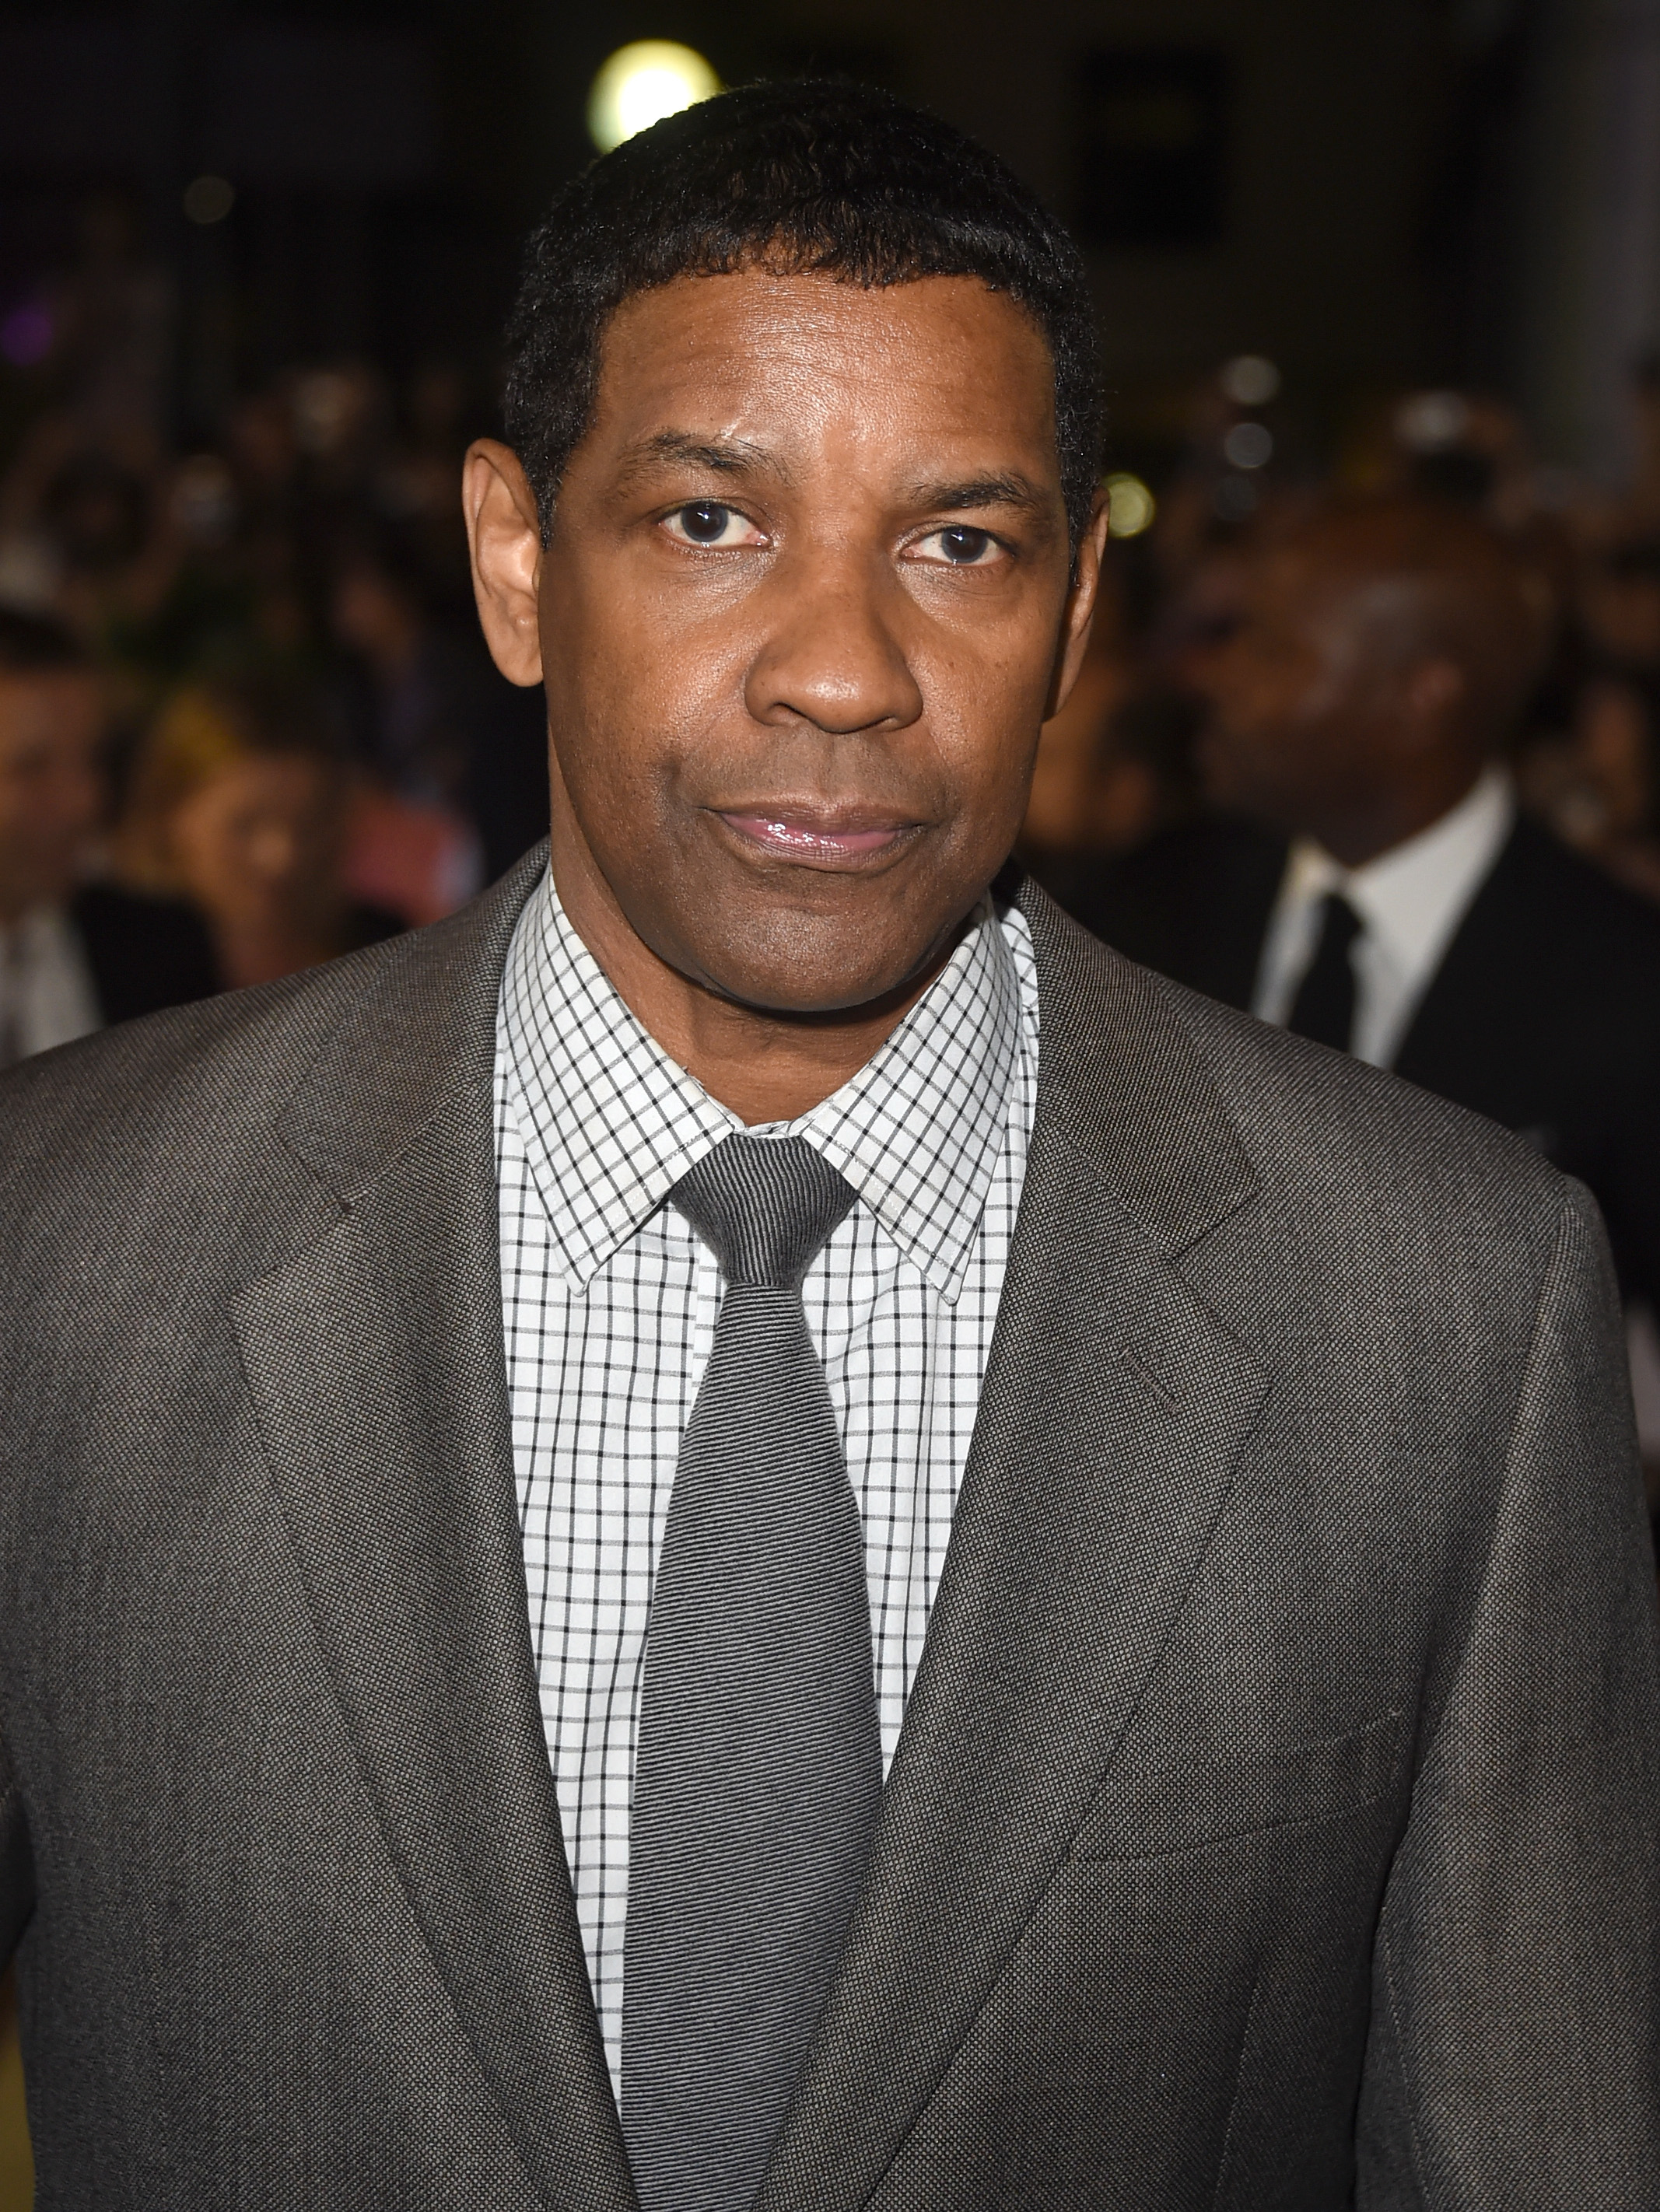 denzel washington filmografiadenzel washington films, denzel washington filmleri, denzel washington wiki, denzel washington fences, denzel washington vse filmi, denzel washington movies, denzel washington kino, denzel washington filme, denzel washington son, denzel washington filmografia, denzel washington height, denzel washington 2017, denzel washington trump, denzel washington family, denzel washington filmebi, denzel washington net worth, denzel washington filmebi qartulad, denzel washington new movie, denzel washington new movie 2016, denzel washington gif